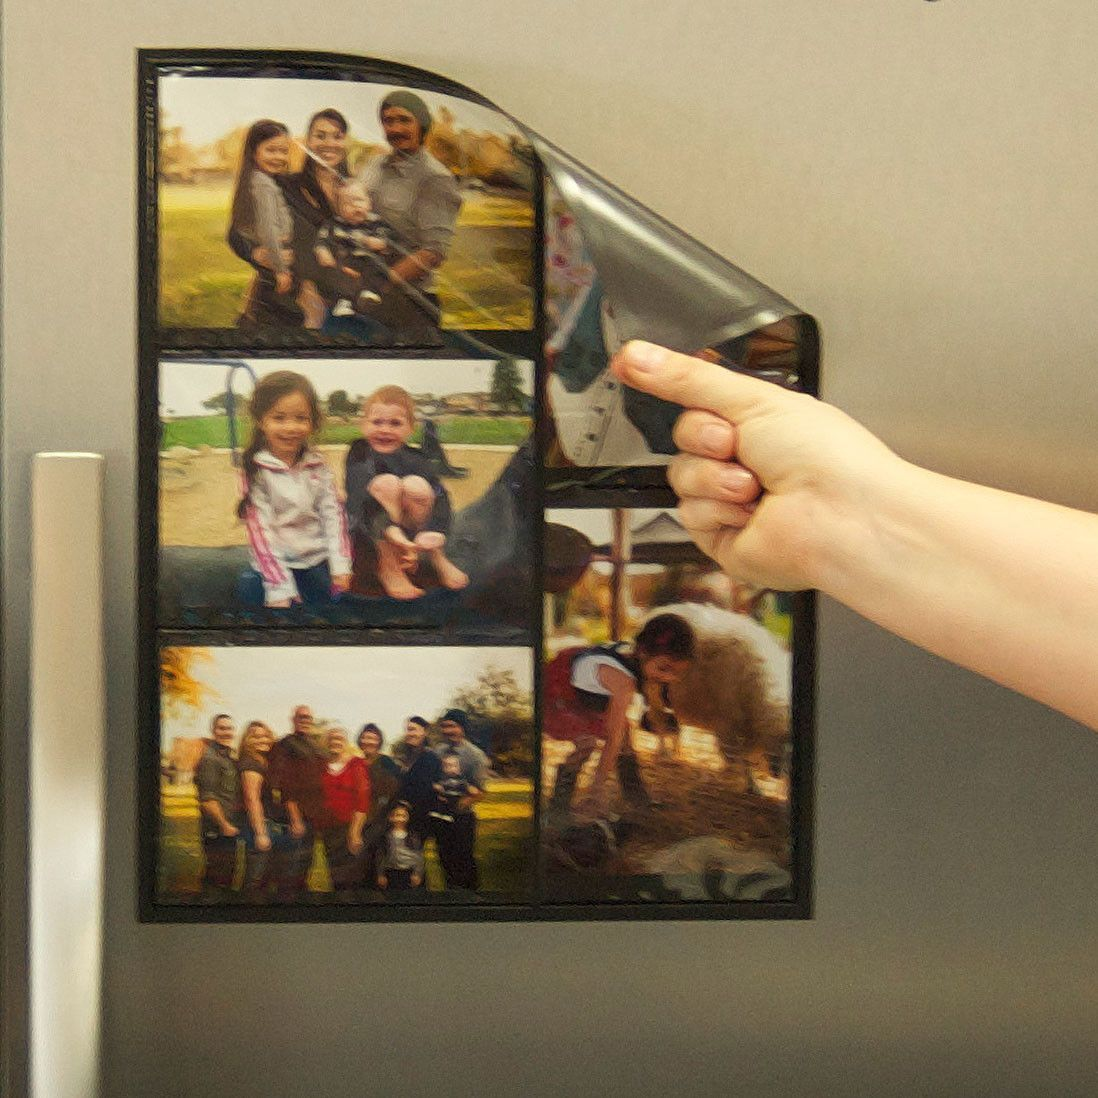 Magnetic Picture Frame Collage For Refrigerator Black Holds 10